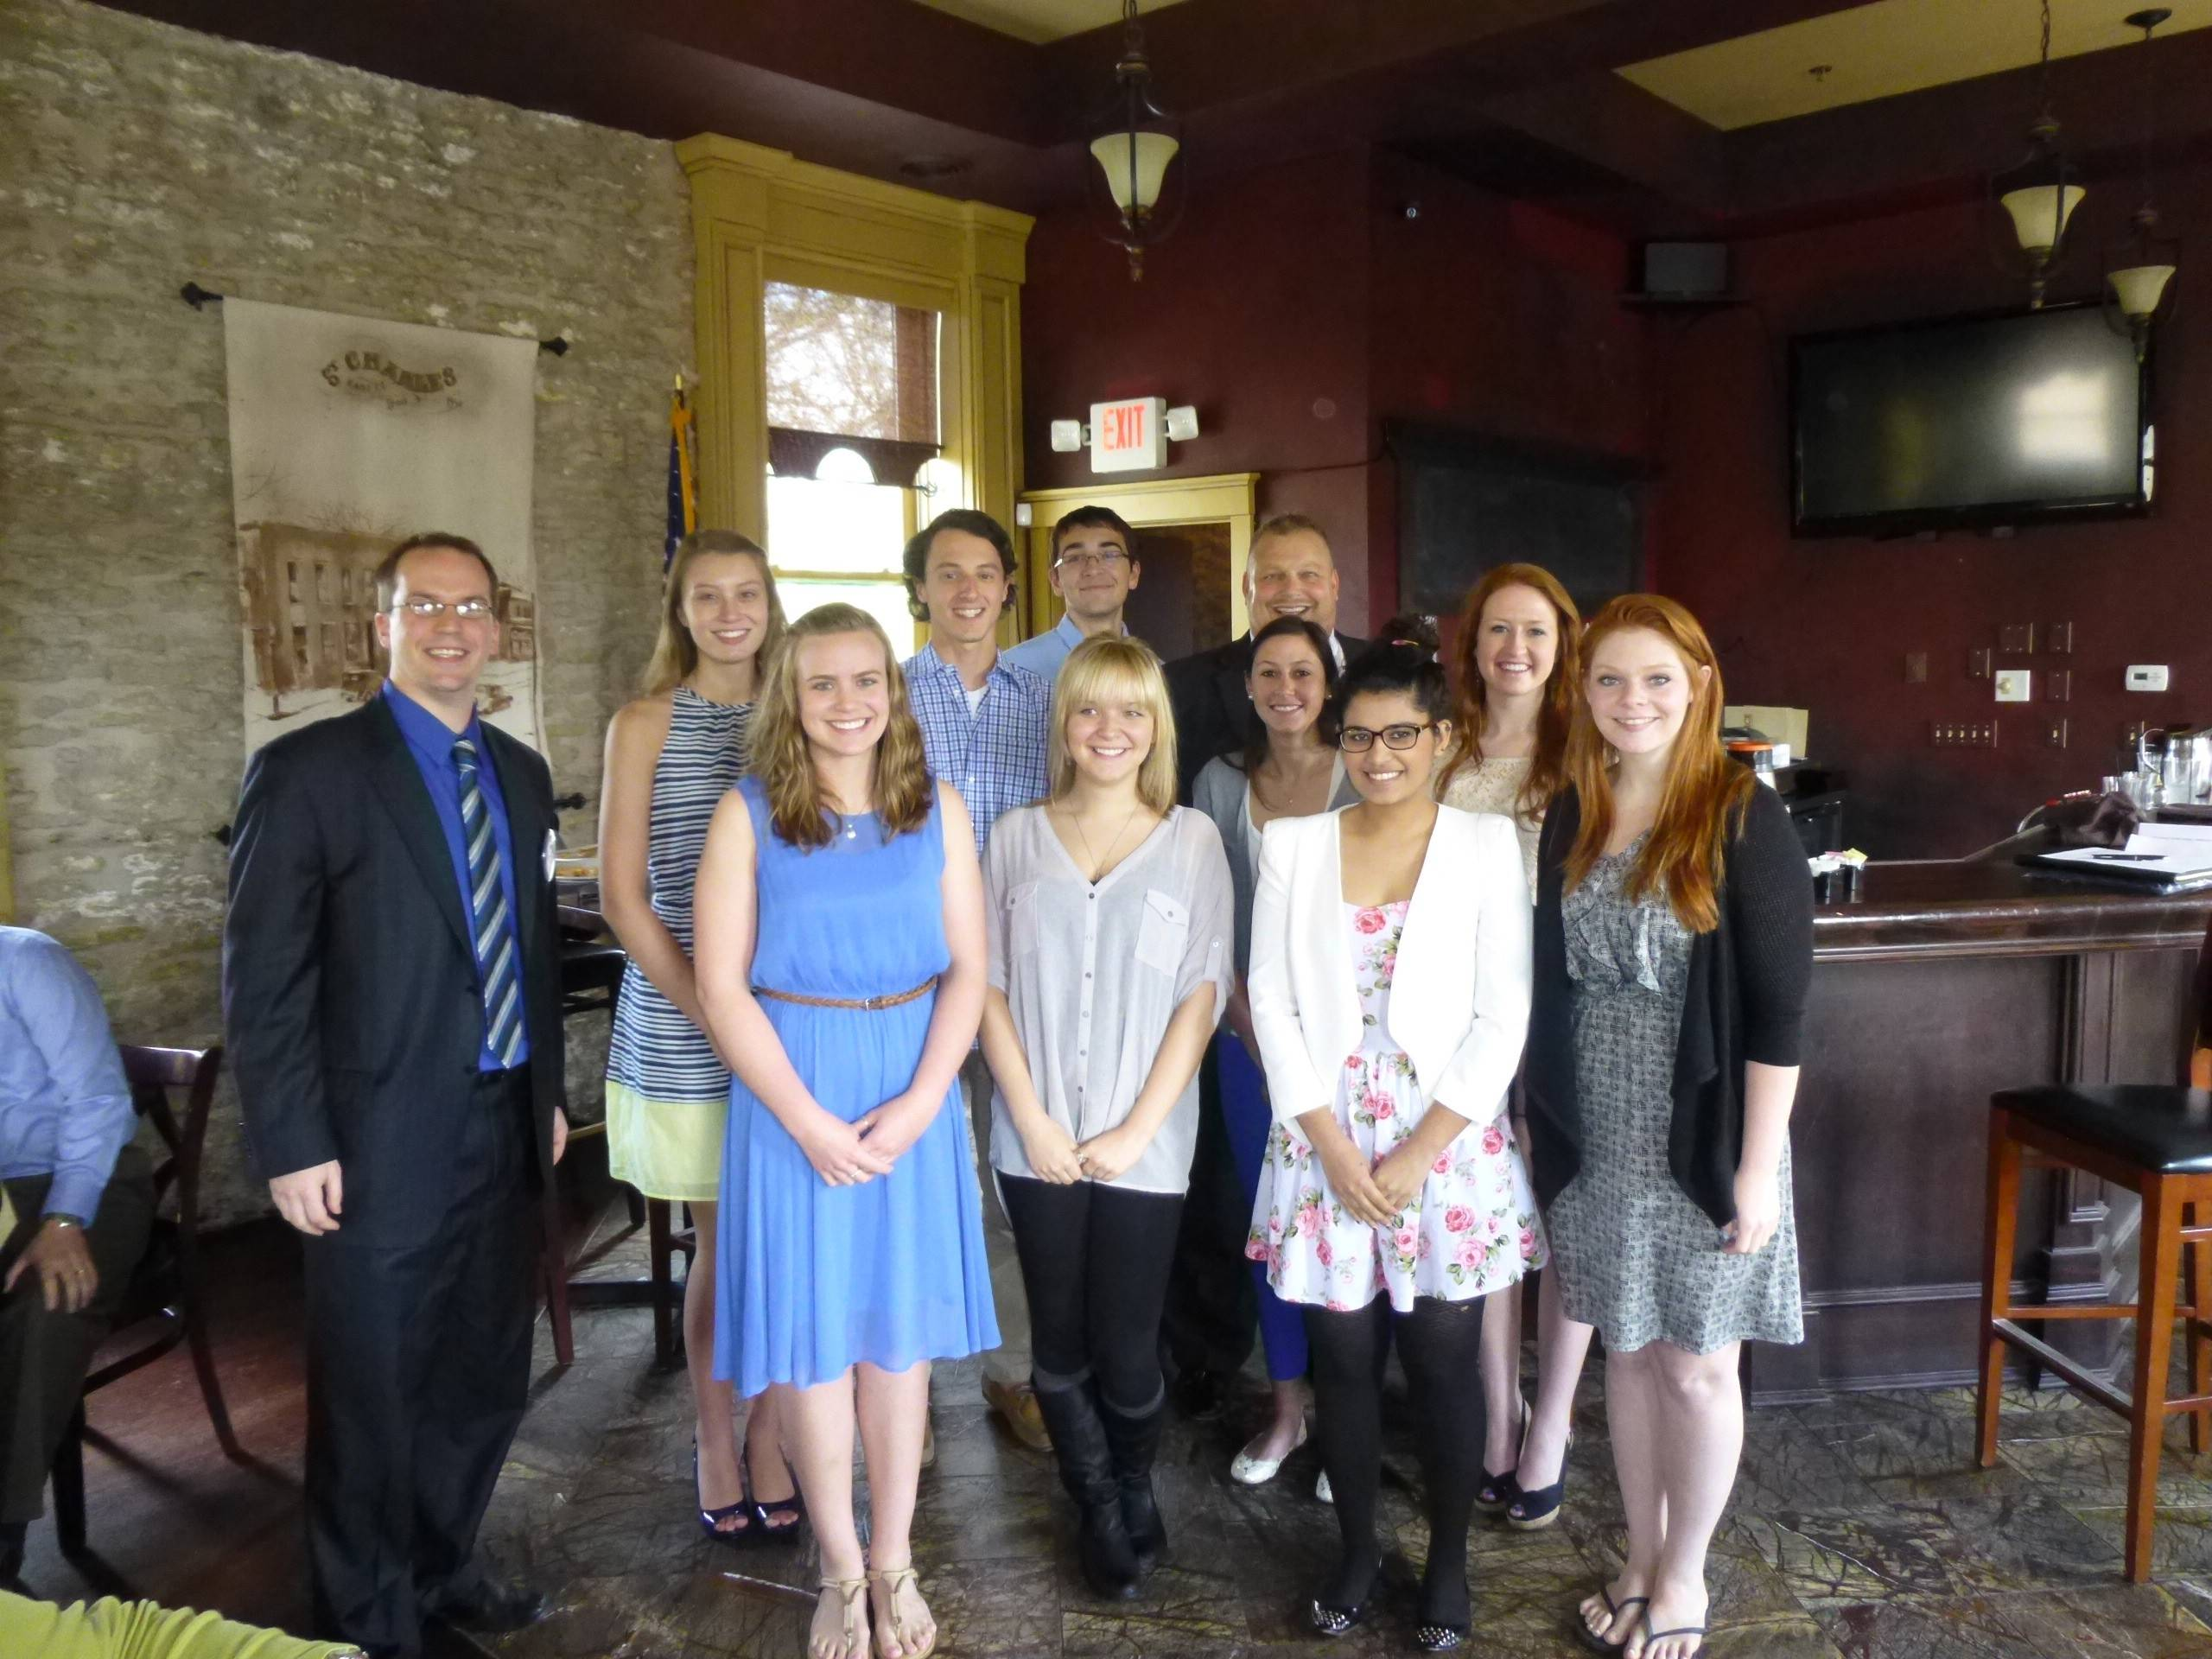 The Rotary Club of St. Charles, with club president-elect Rich Kitick, left, and Dean Carlson, president of St. Charles Rotary Club Foundation, back right, award $16,000 to local students, from left, Claire Davis; Hannah Zimmer; Daniel Beckman; Michael Nelson; Rachel Baumgartner, Maria Ranieri, Alishaa Hasan, Mary MacCarthy, and Ashley Montgomery.